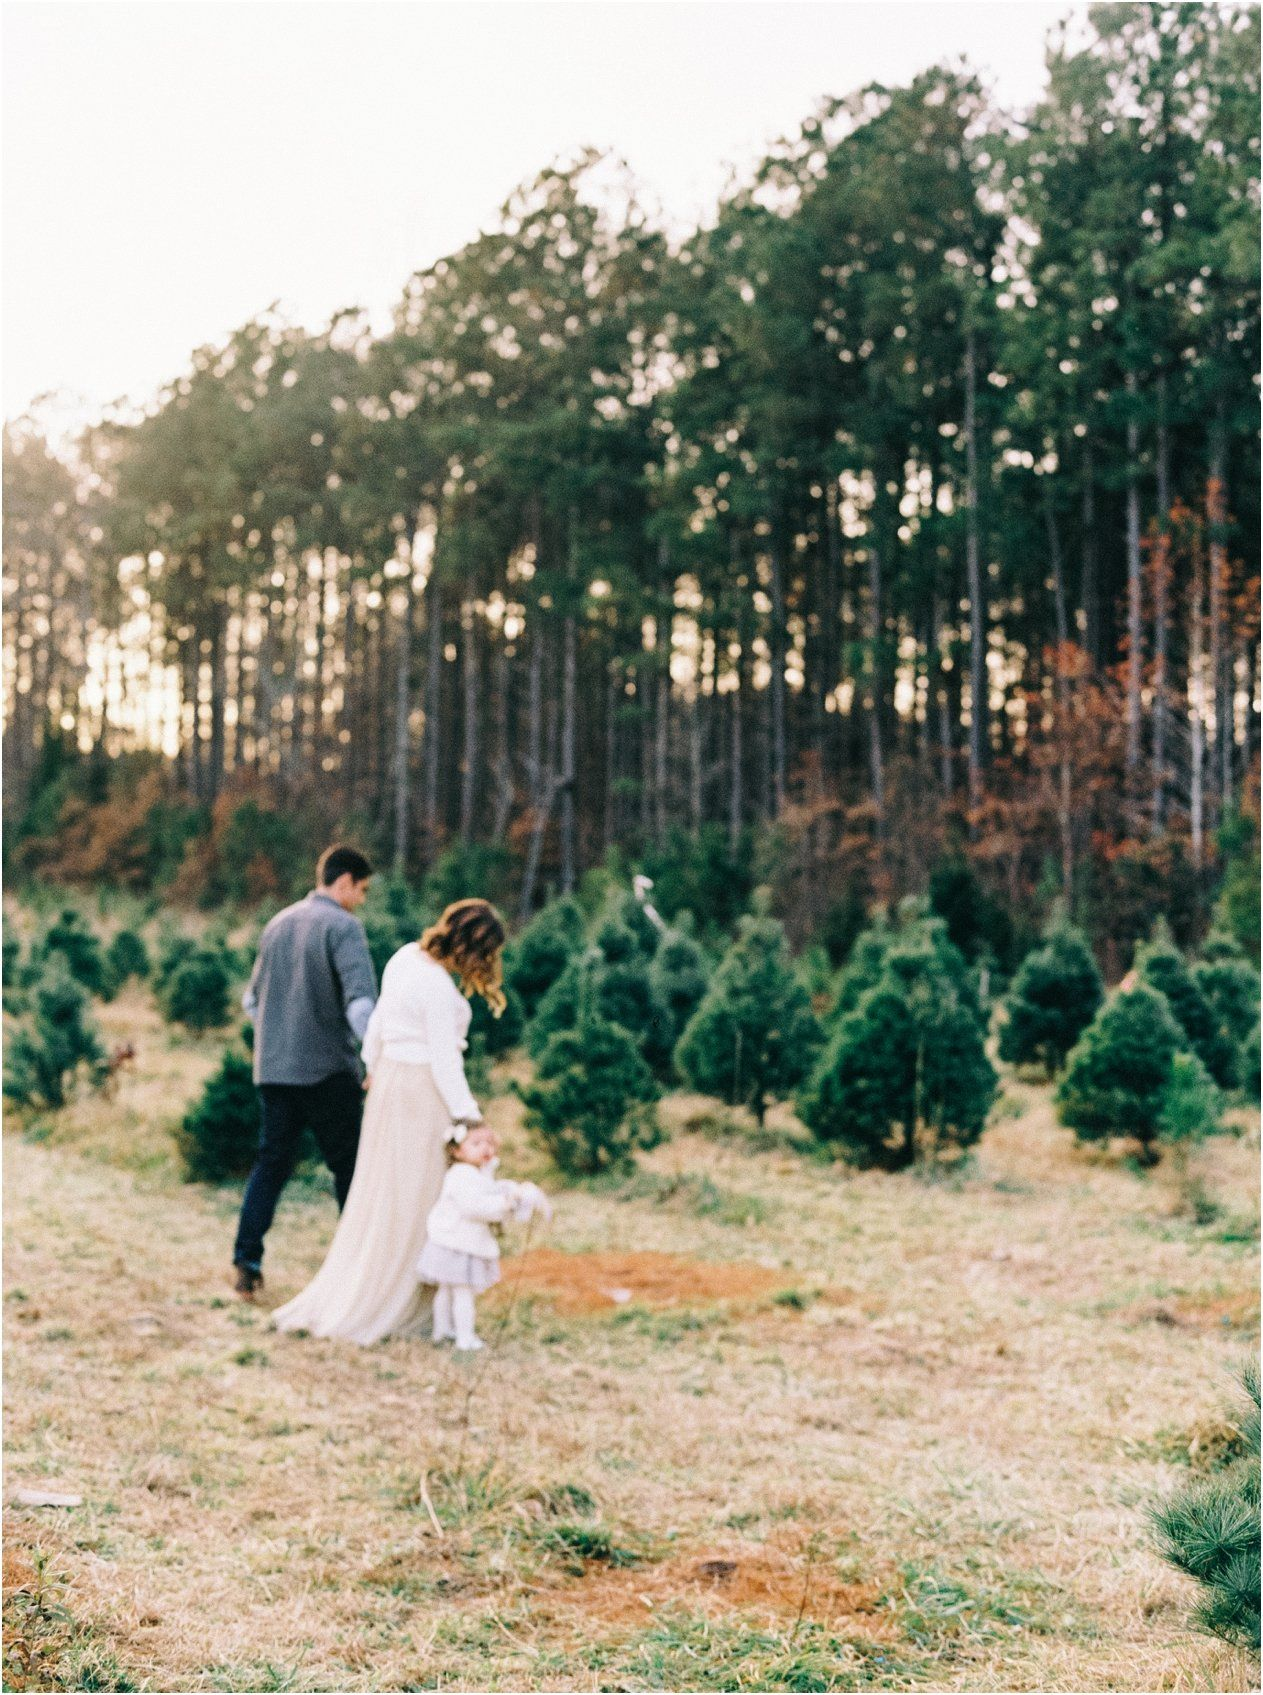 Christmas Tree Family Session With Nikki Santerre Merry Christmas Darling Seasons Of Life Christmas Tree Farm